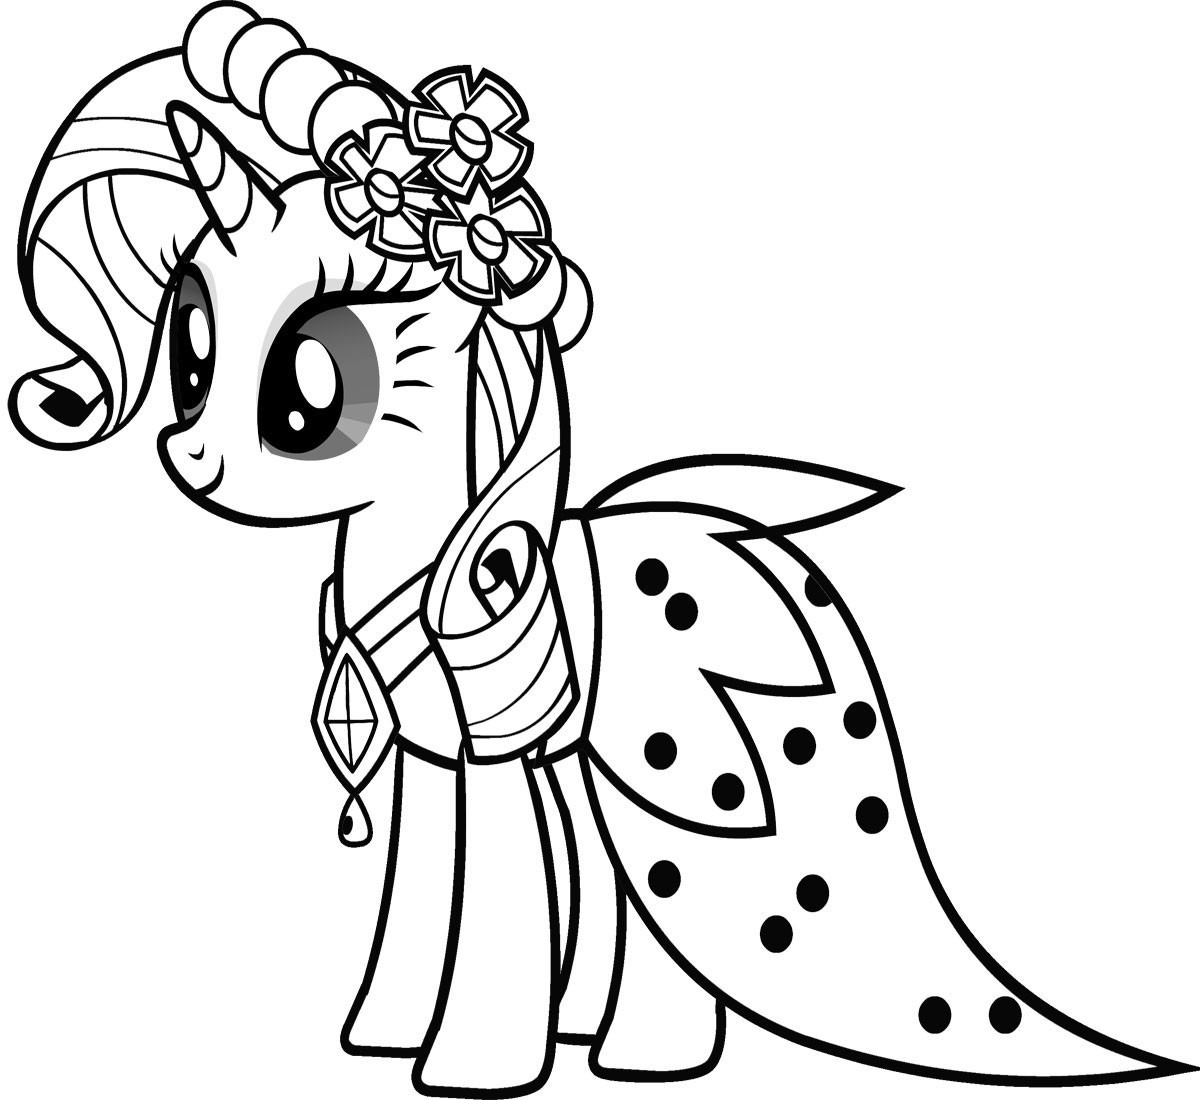 Dibujos Para Colorear De La Princesa together with Kolorowanki My Little Pony Z Sweetie Swirl as well Dibujos Para Colorear De La Reina additionally My Little Pony Coloring Pages also Sweetie Belle Line Art 466800059. on princess sweetie belle